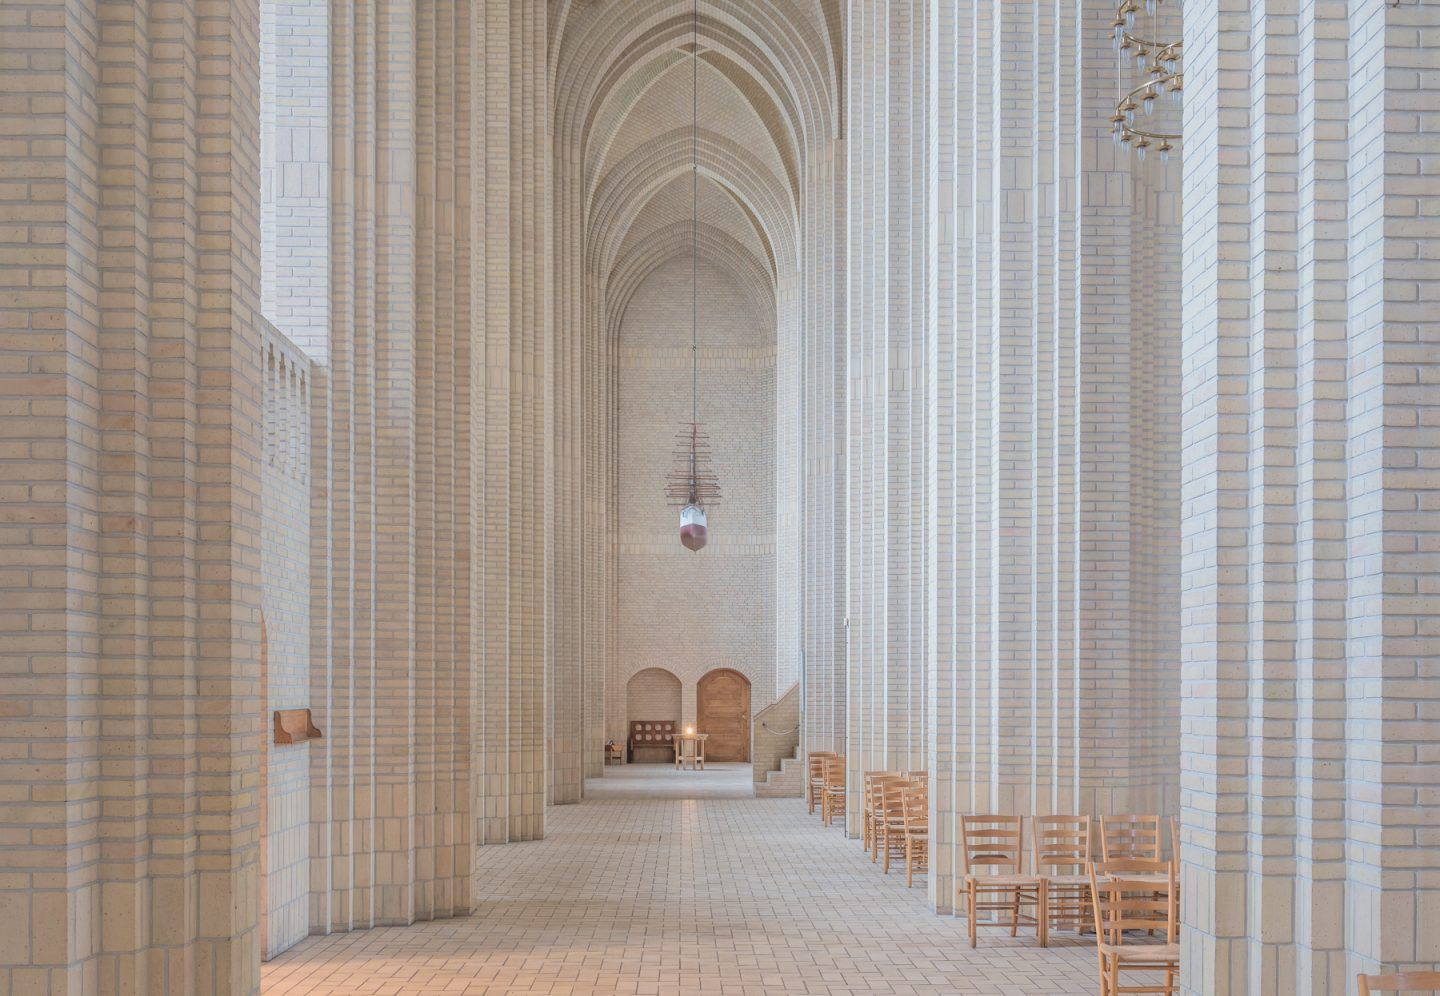 IGNANT-Photography-Ludwig-Favre-Copenhagen-Church-07